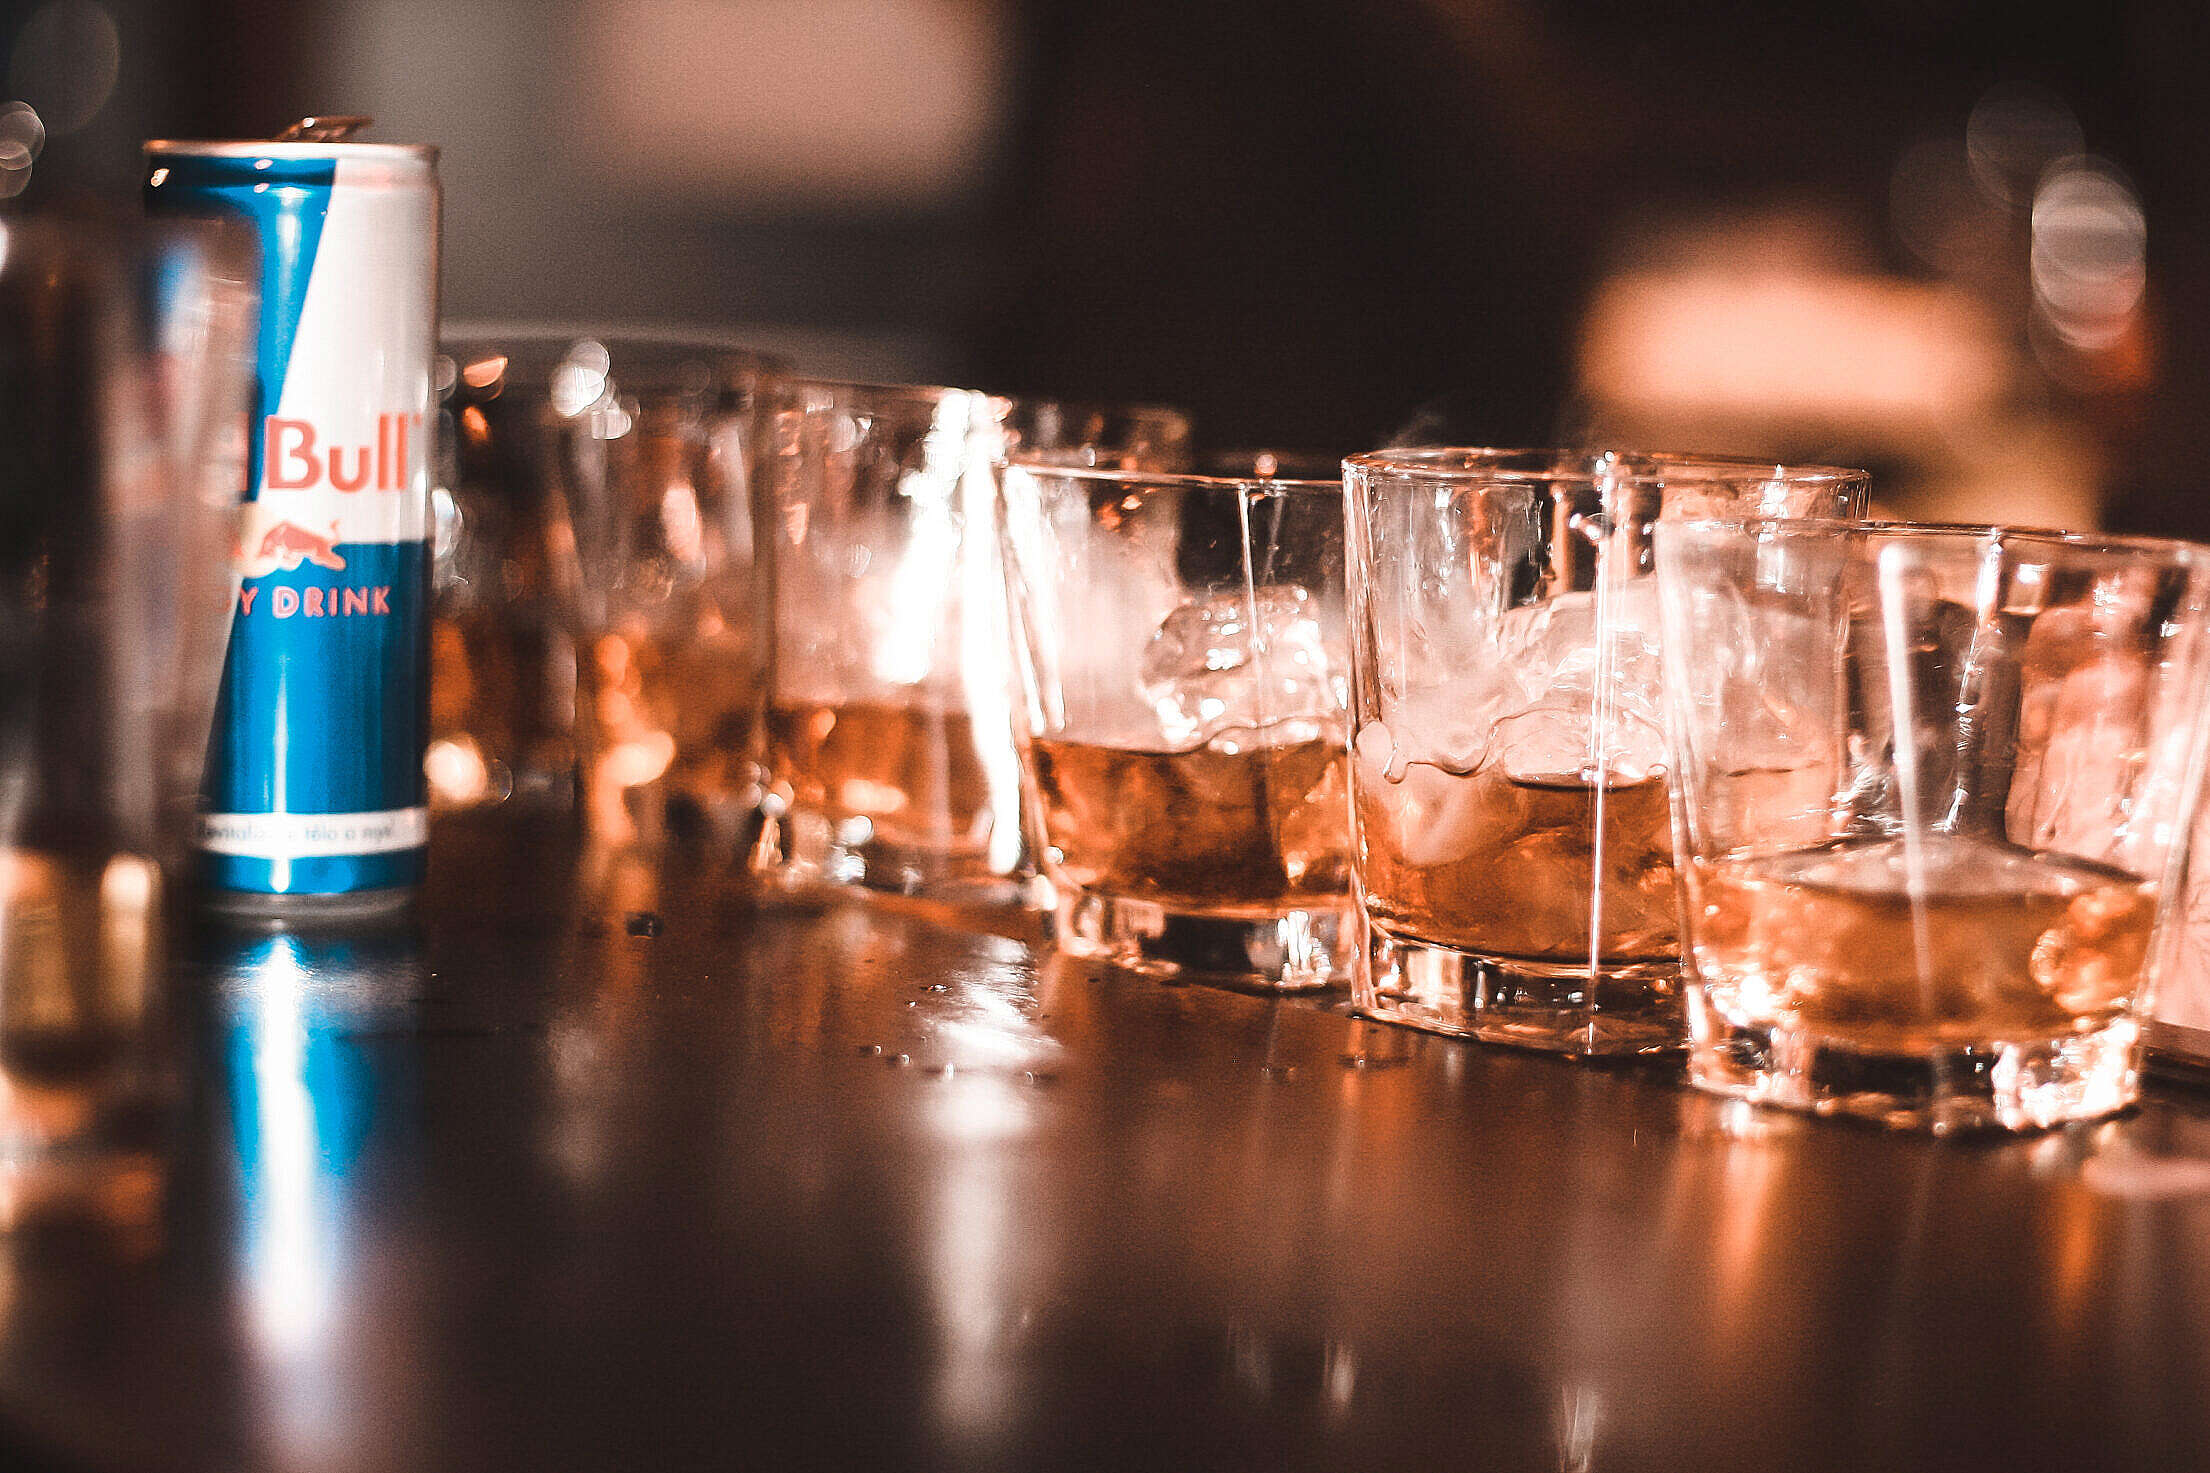 Energy Drink with Alcohol Party Drinking Free Stock Photo